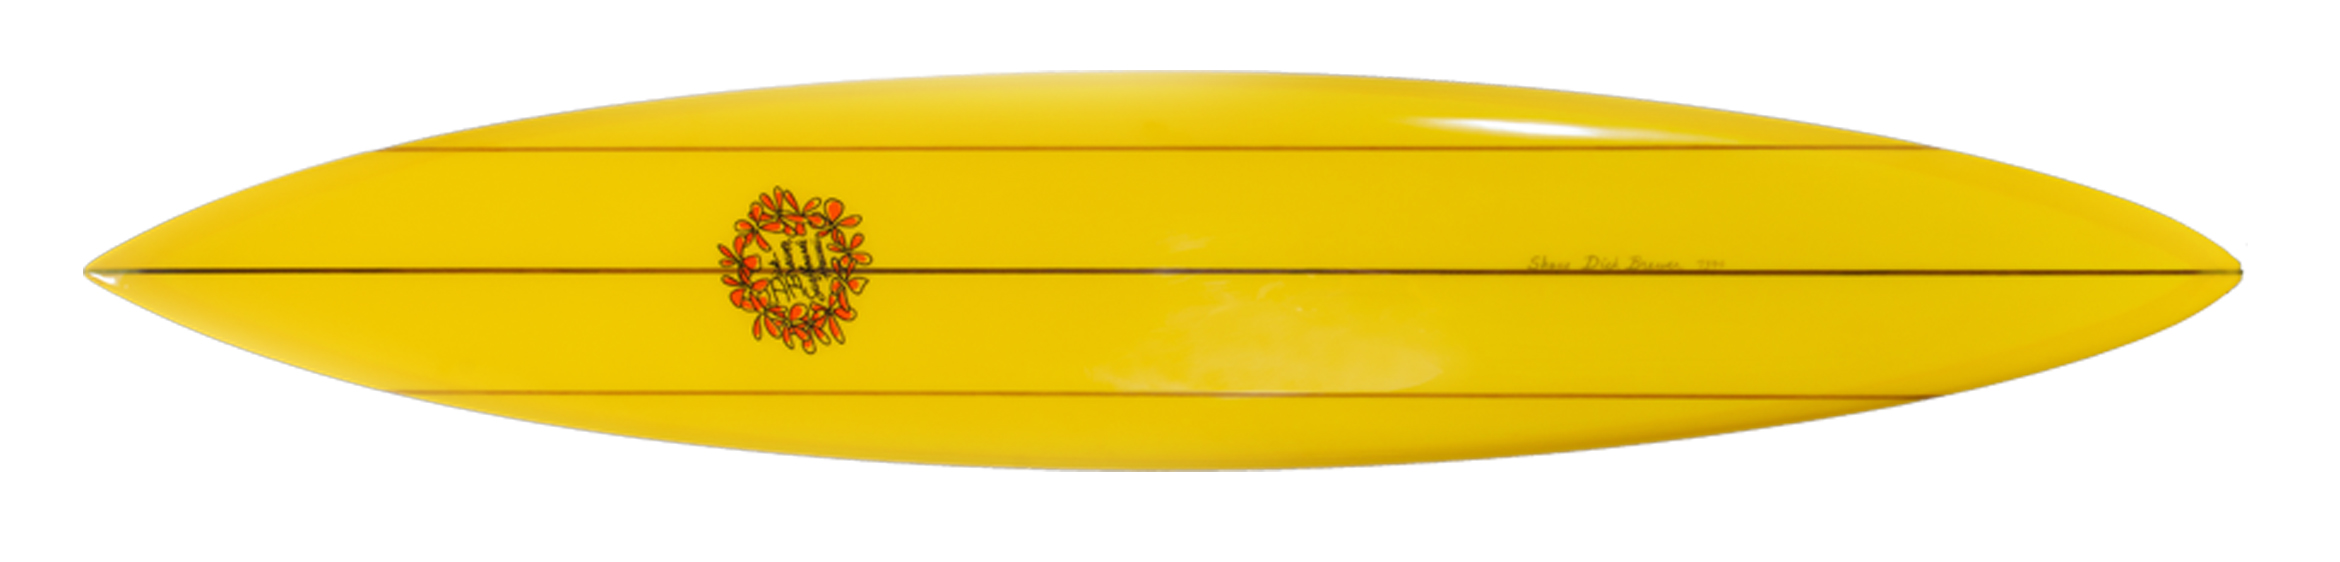 Dick Brewer Surfboards Step Up Gun.jpg